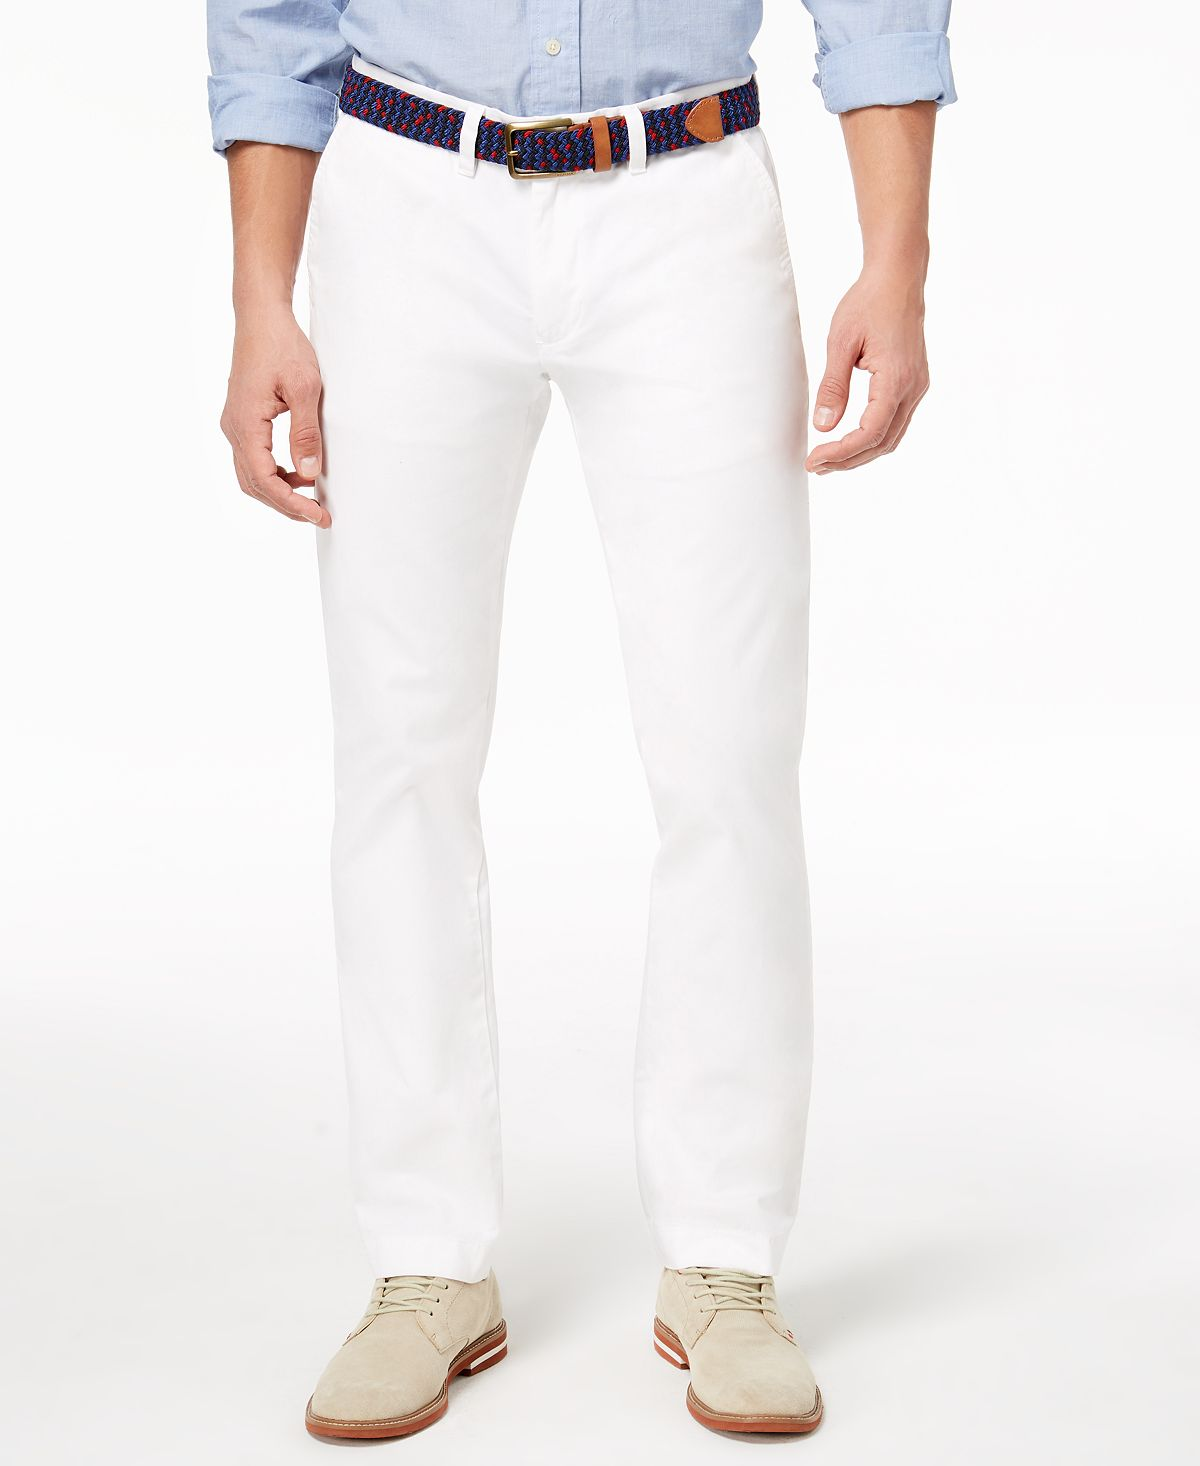 Tommy Hilfiger Th Flex Stretch Custom-fit Chino Pant